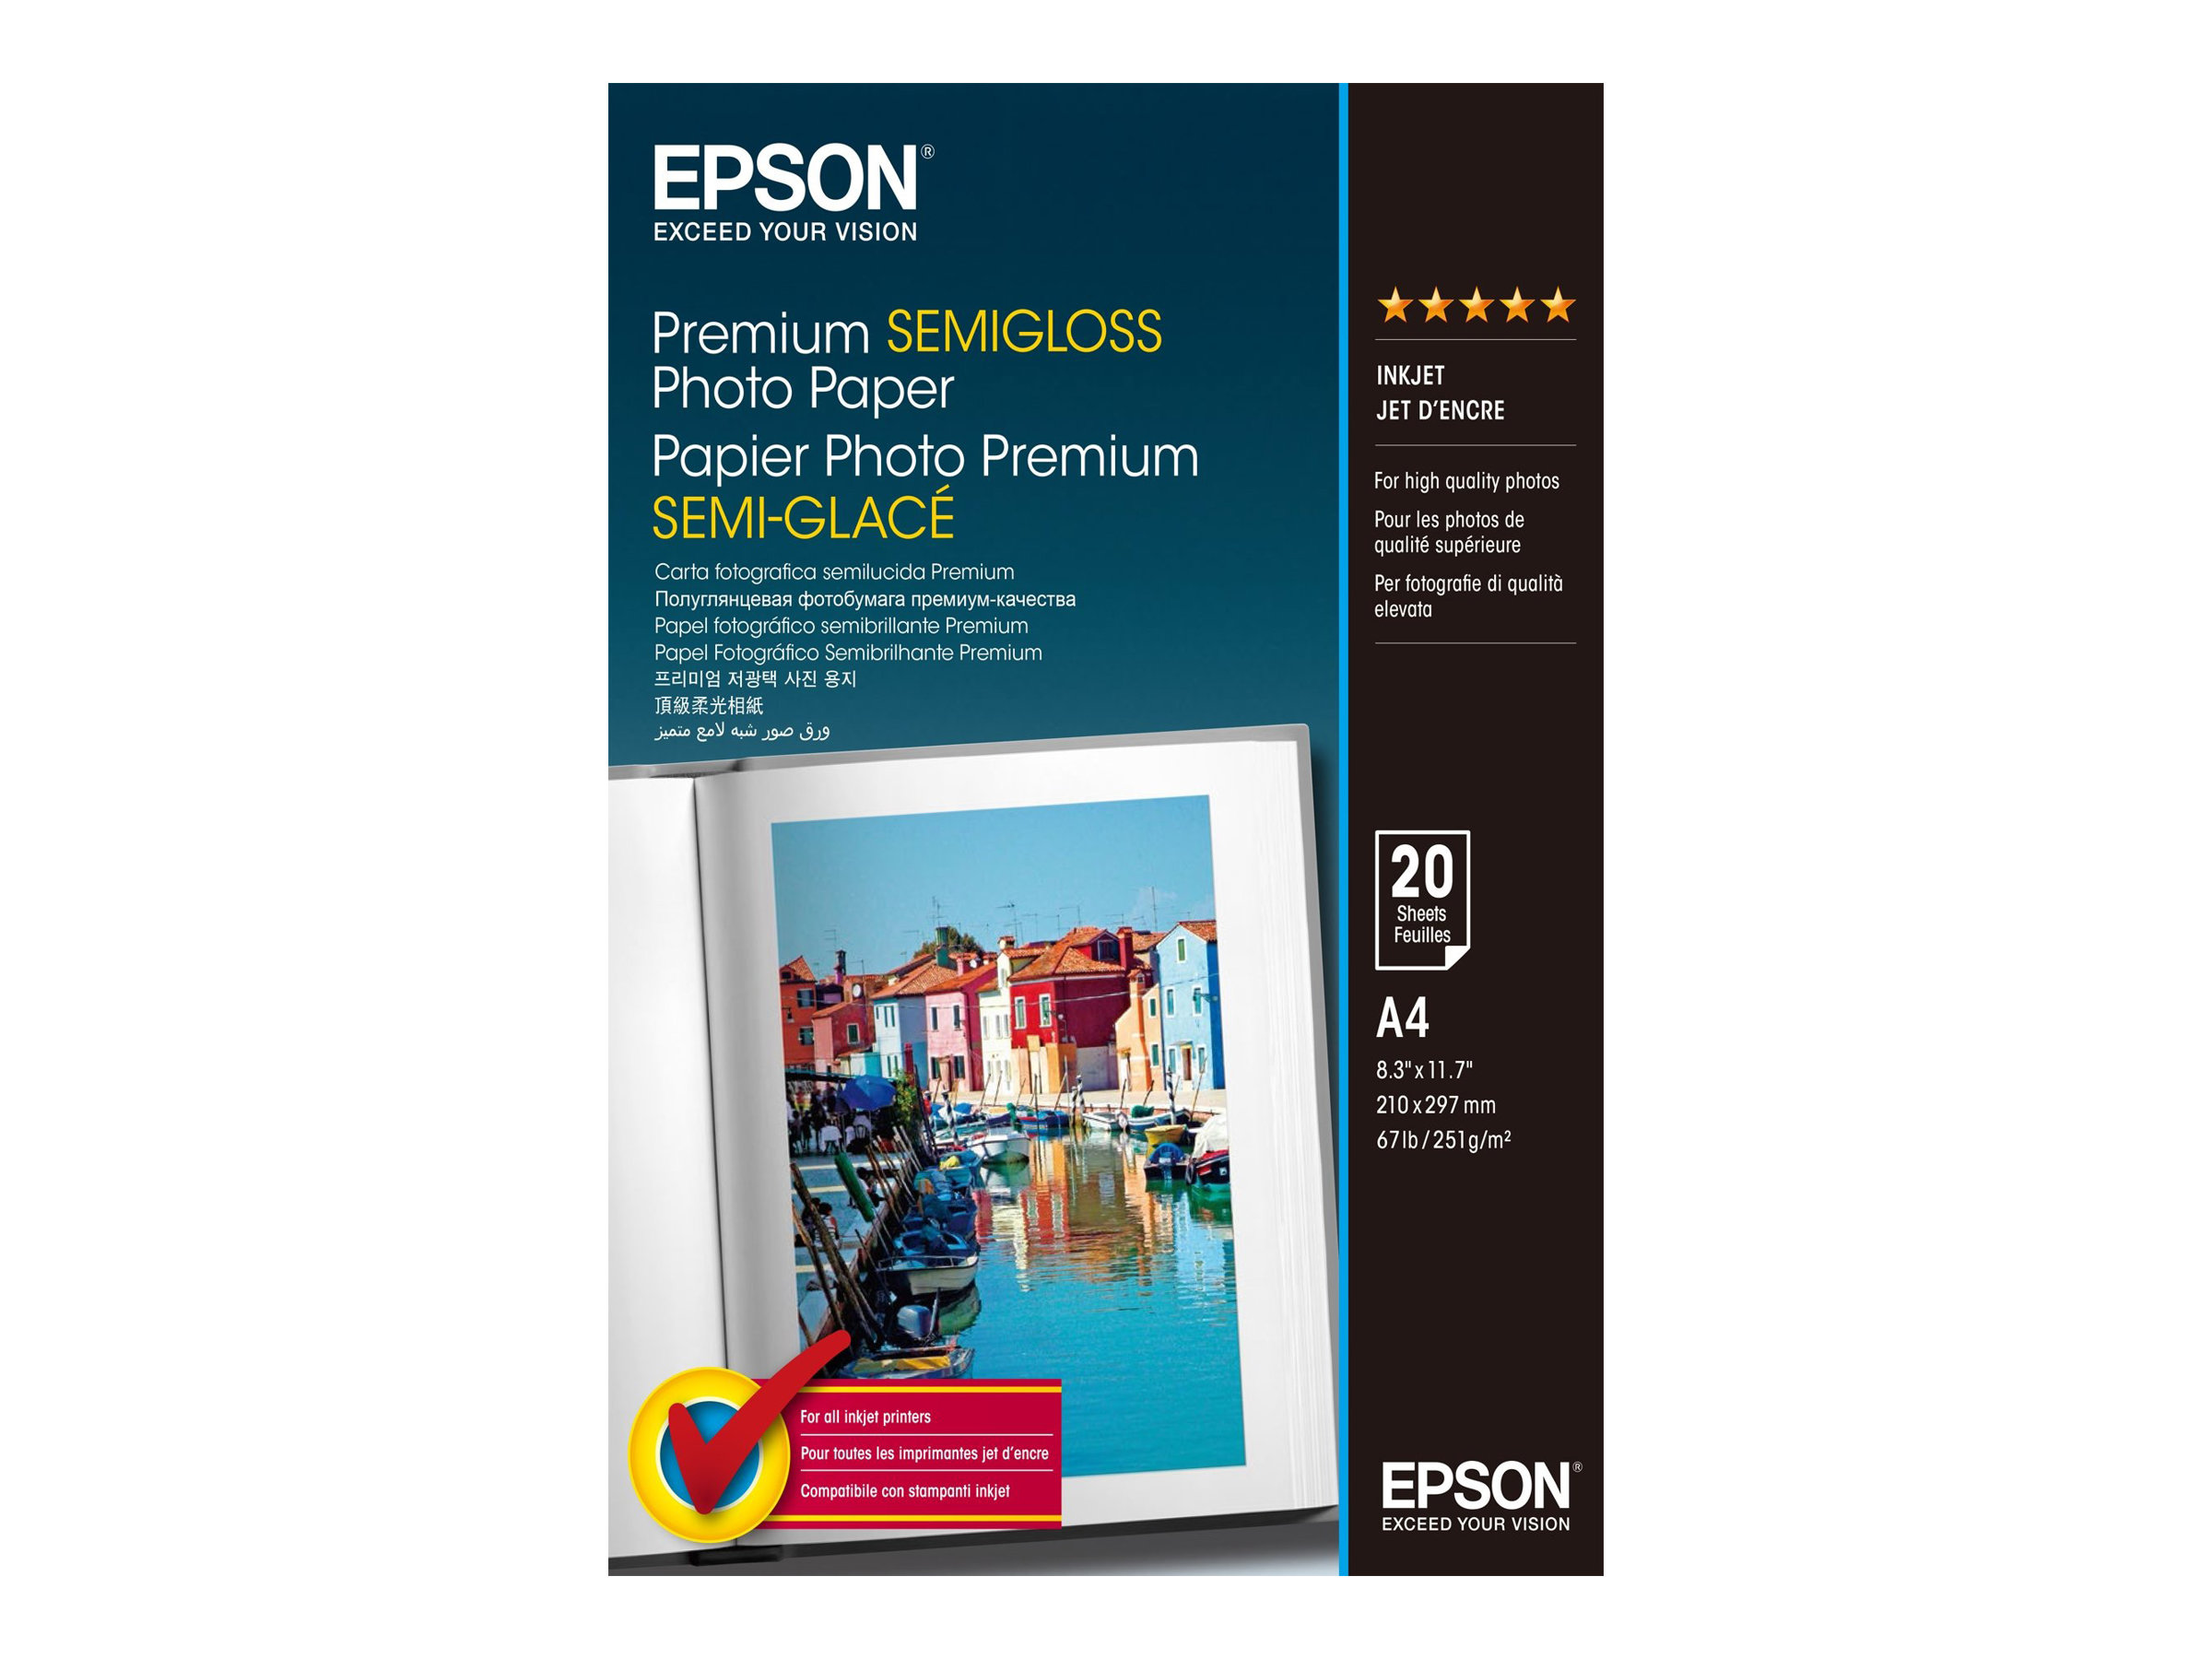 Epson Premium Semigloss Photo Paper - Halbglänzend - A4 (210 x 297 mm) 20 Blatt Fotopapier - für Expression Home HD XP-15000; Expression Premium XP-540, 6000, 6005, 900